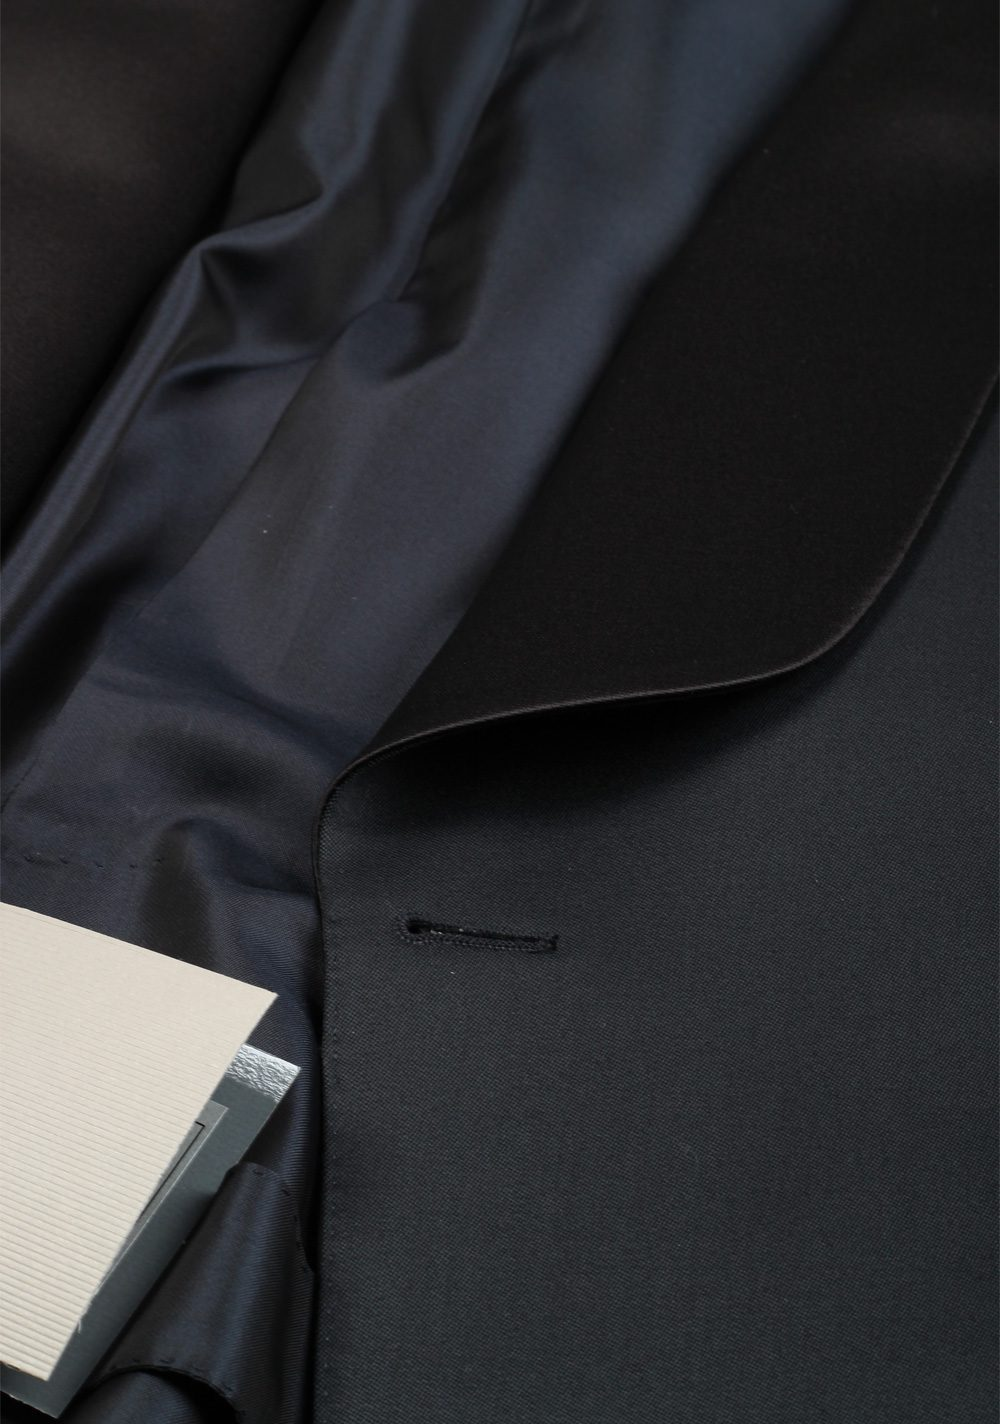 TOM FORD O'Connor Midnight Blue Tuxedo Suit Size 46 / 36R U.S. Shawl Collar Fit Y | Costume Limité